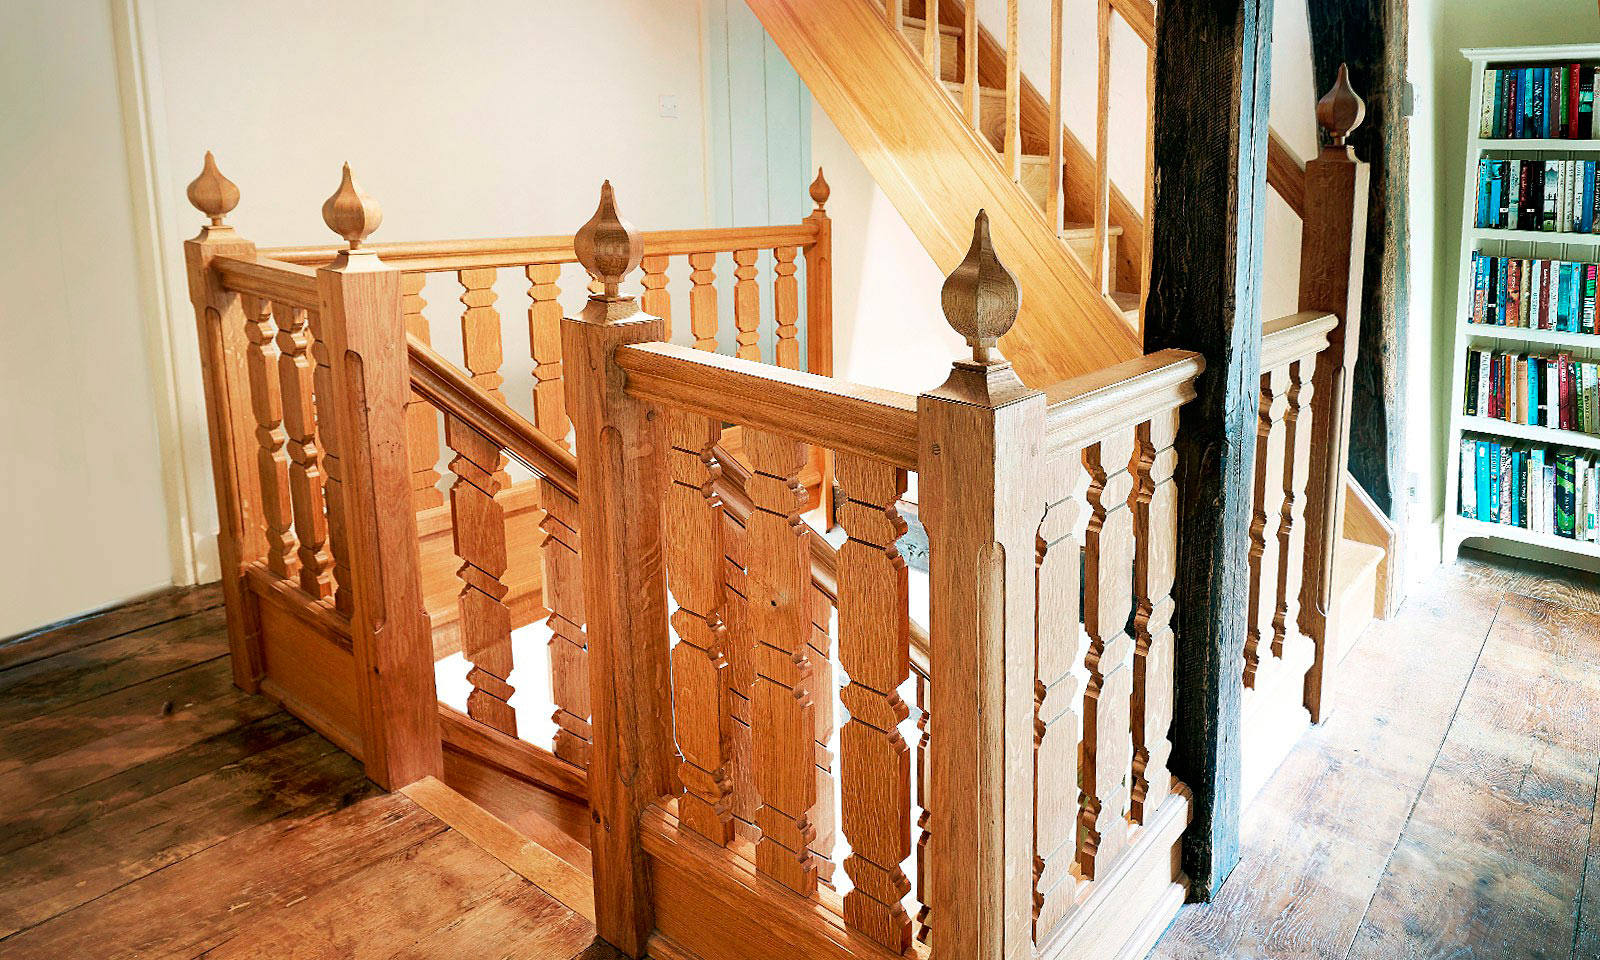 Gothic Staircase. Bespoke, custom made, stairs, made using traditional wood-working techniques and manufactured out of solid European oak. Bespoke custom made joinery from Mounts Hill.